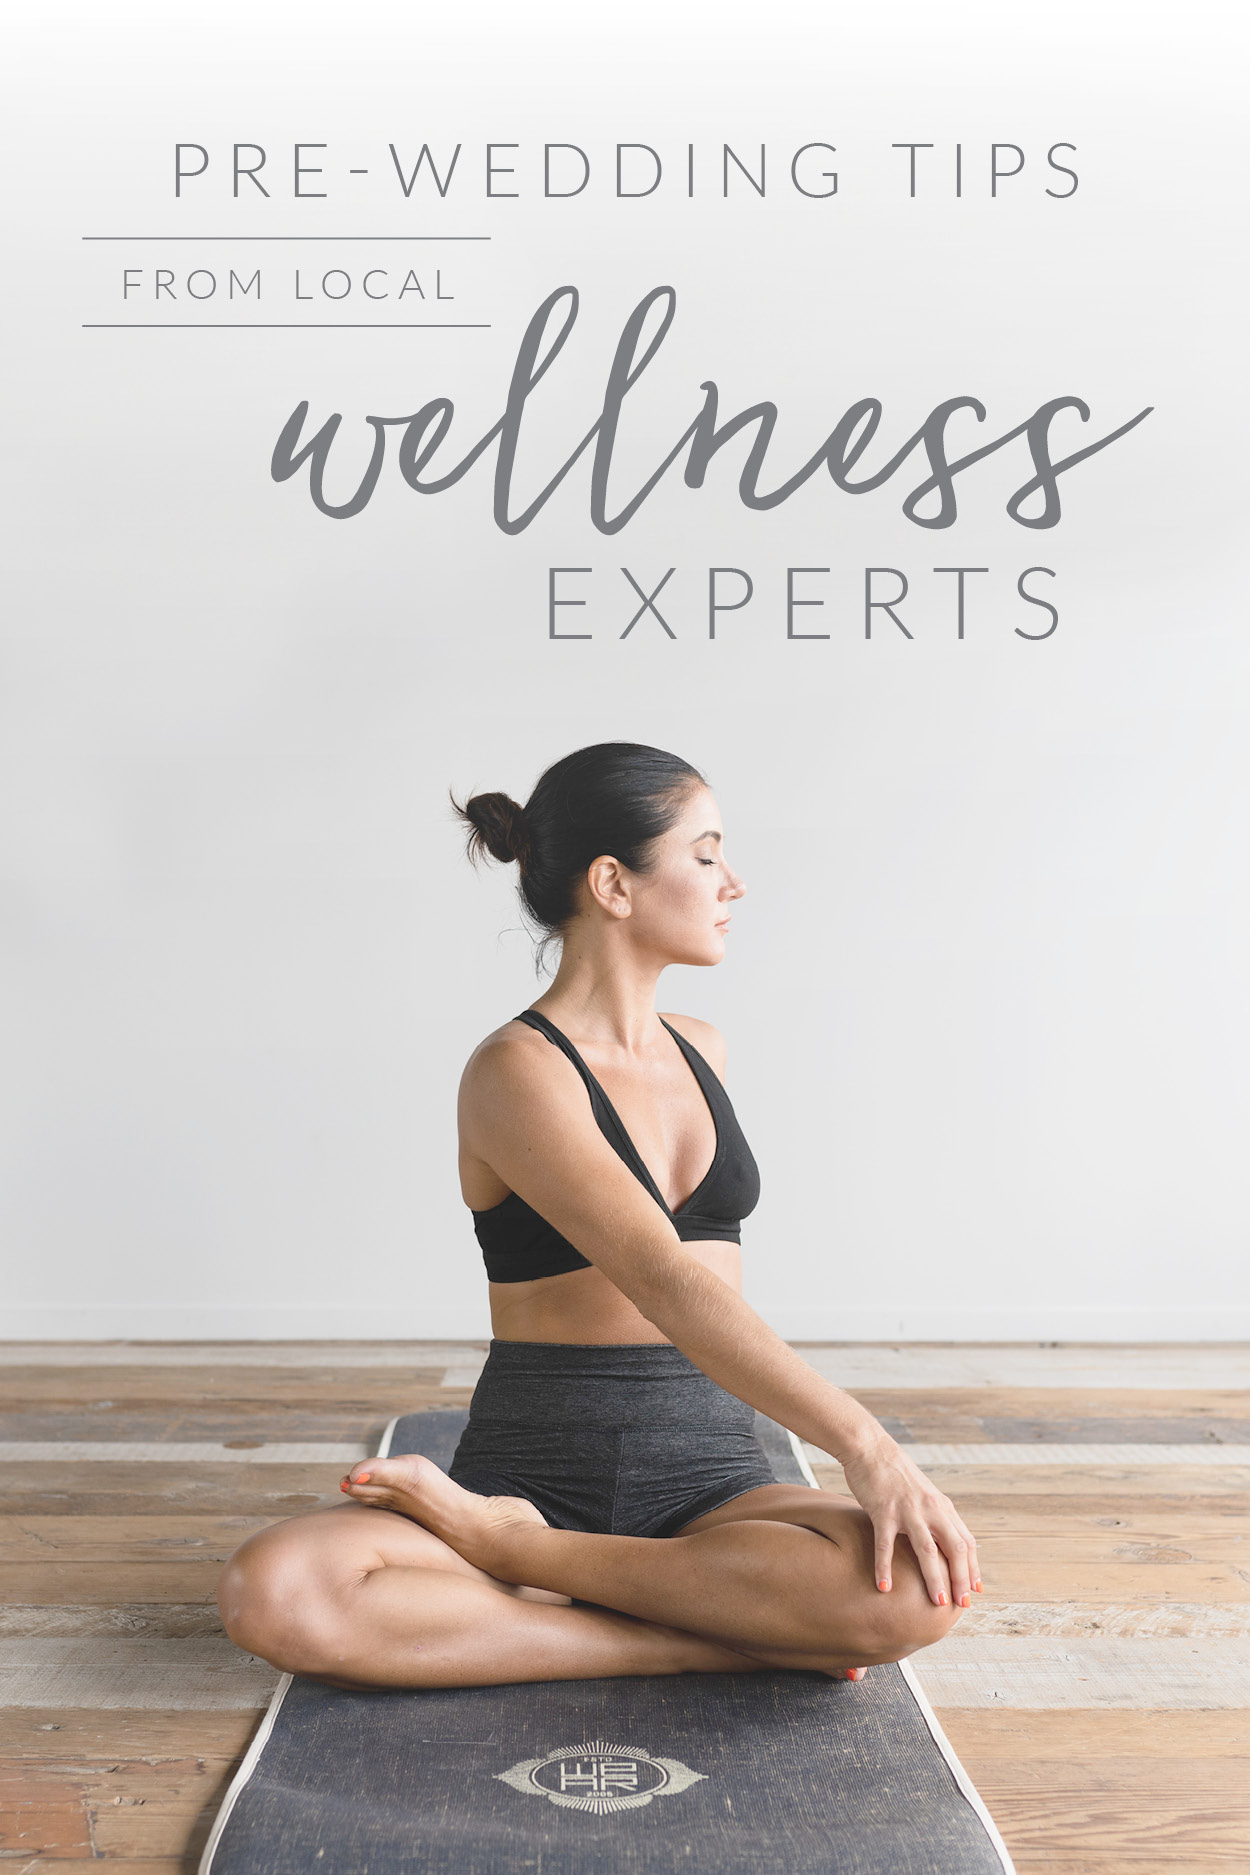 prewedding tips from local wellness experts - self care tips for couples and expert advice on how to relax before your wedding